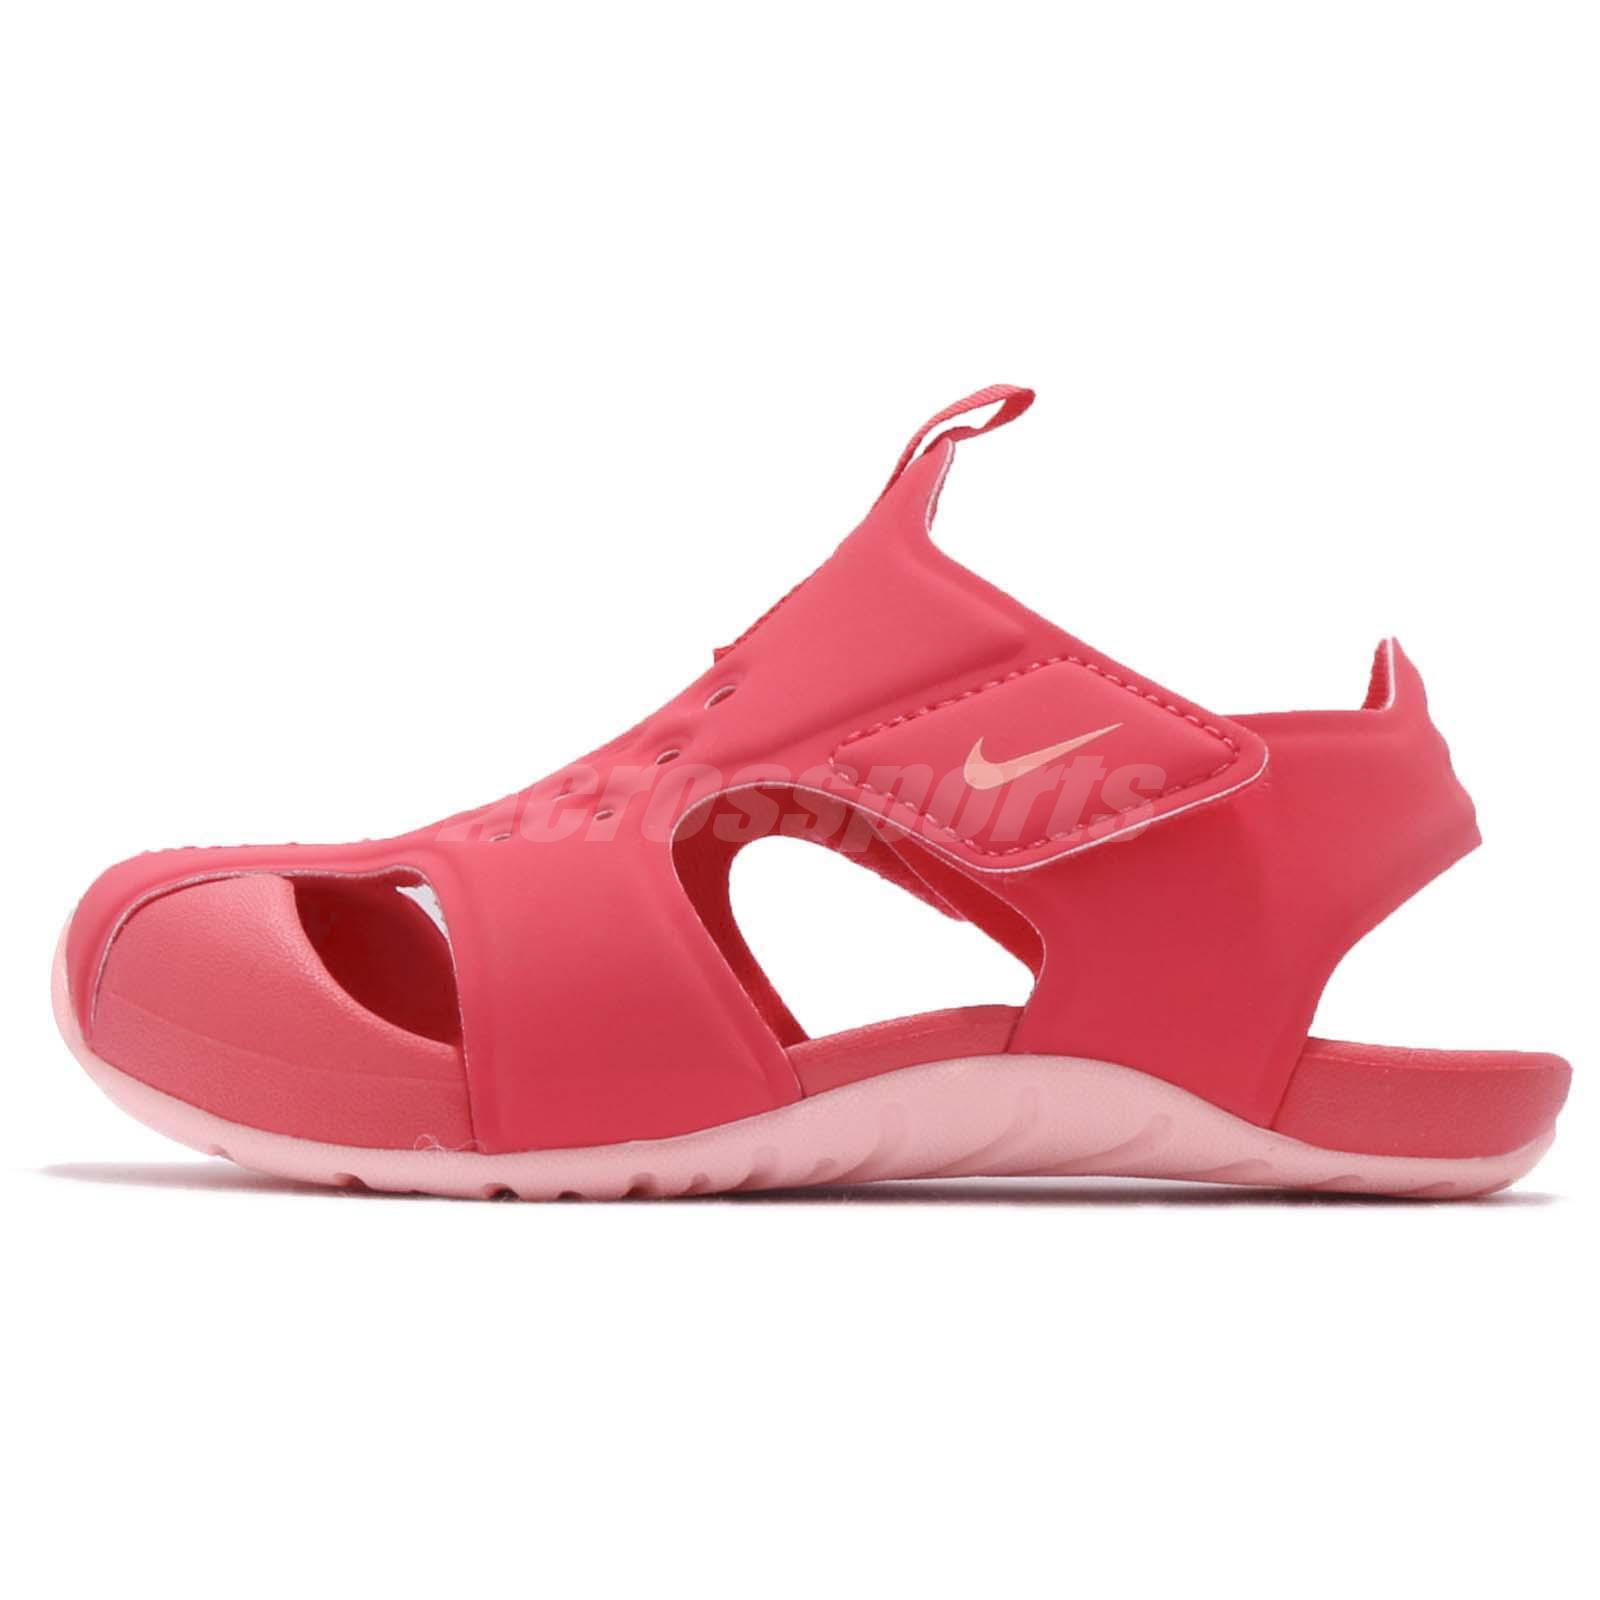 e52cc7c26086 Nike Sunray Protect 2 TD II Tropical Pink Coral Toddler Infant Sandal  943829-600